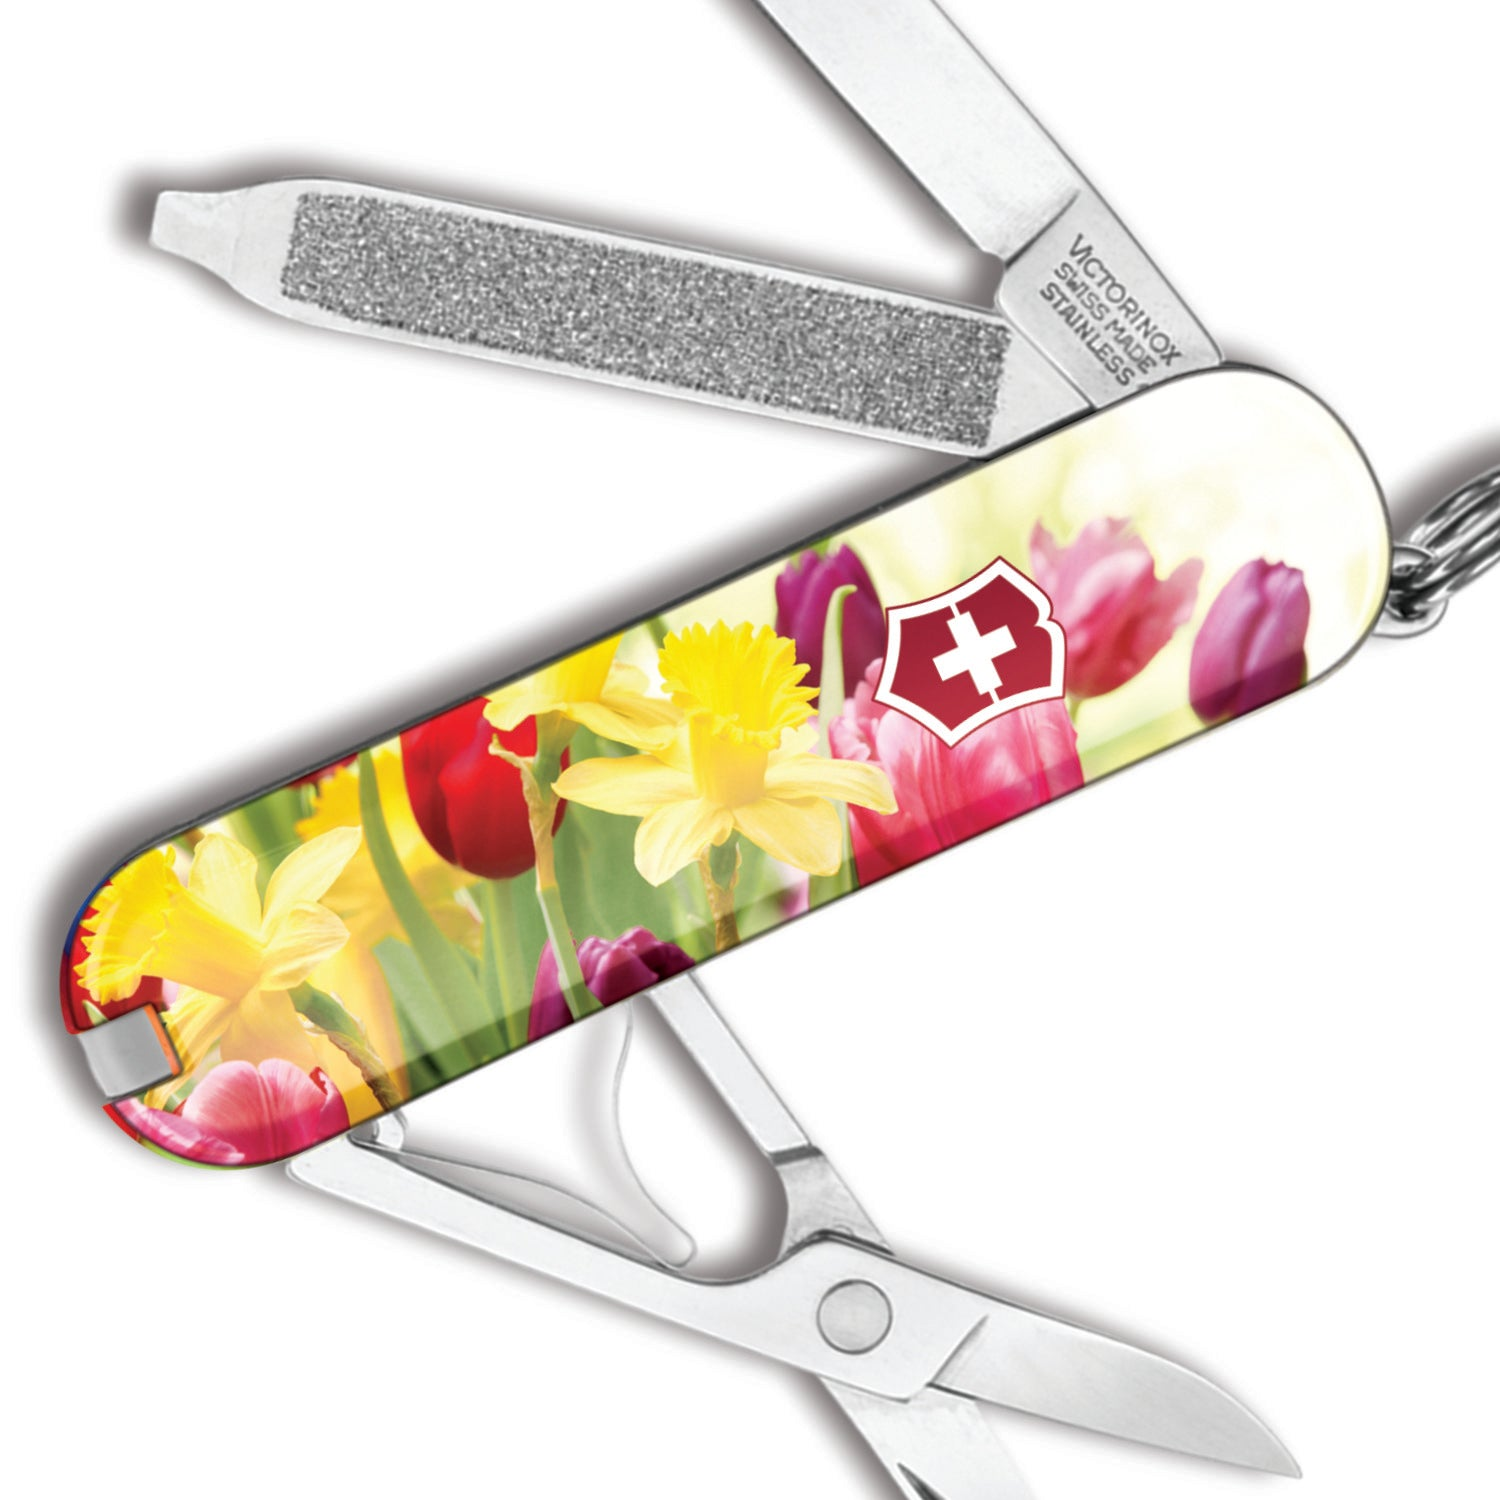 Spring Collection of Exclusive Swiss Army Knives